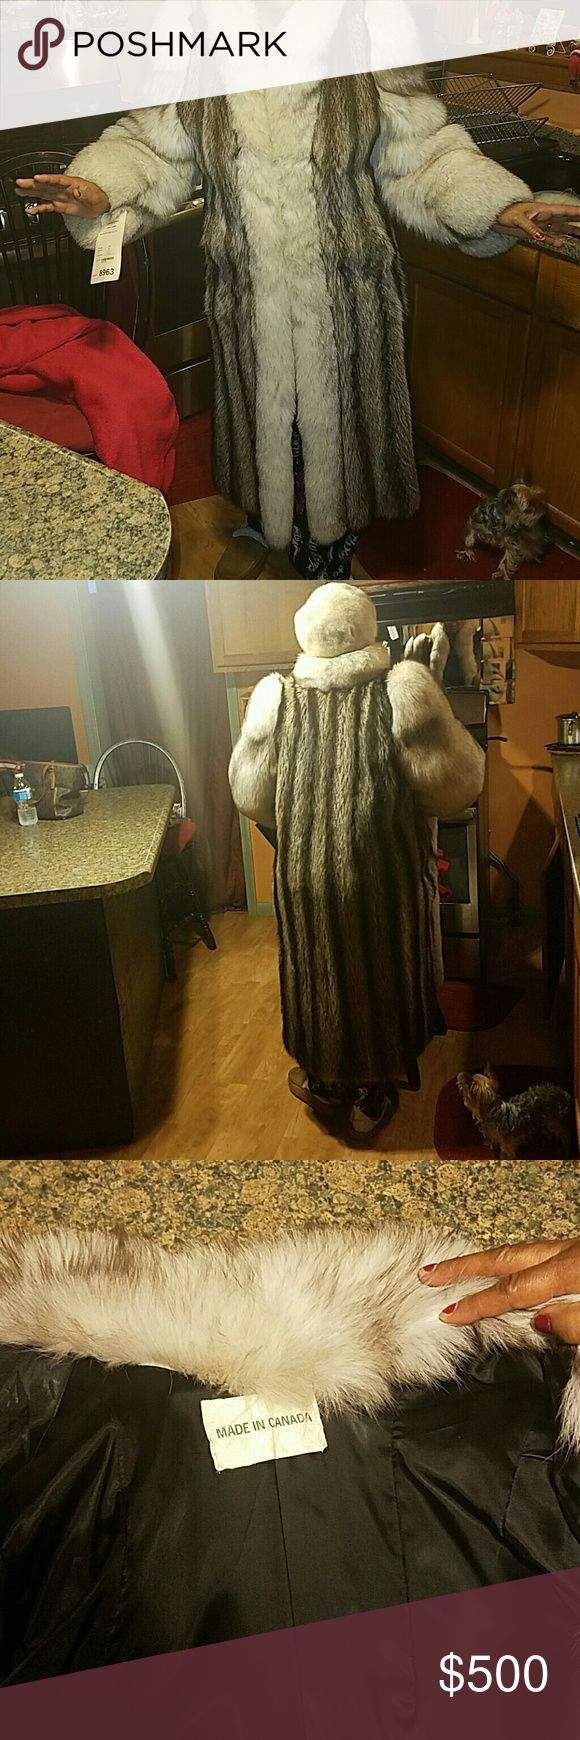 White mink coat and matching hat Long fur coat good for fall and winter and in excellent condition Jackets & Coats